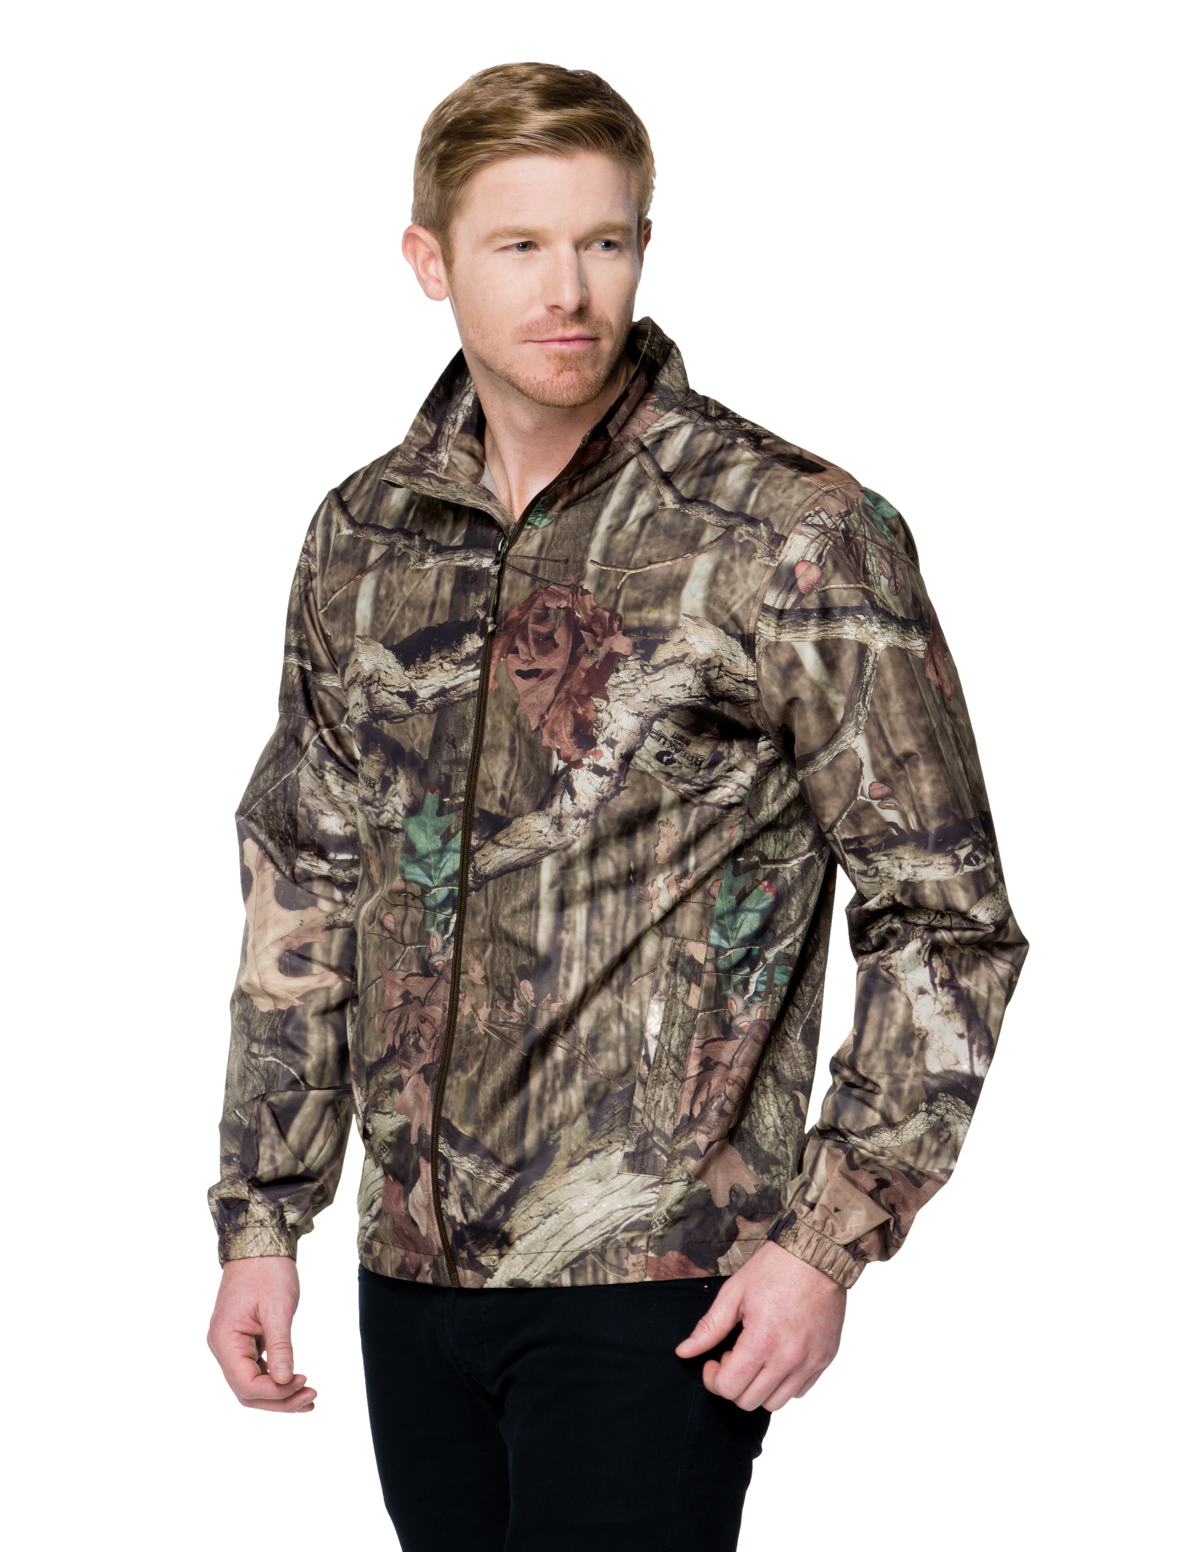 4287a2caec89e Matrix Camo-Lightweight Jacket Features A Shell Of Windproof/Water  Resistant Polyester With Upf 25 Protection